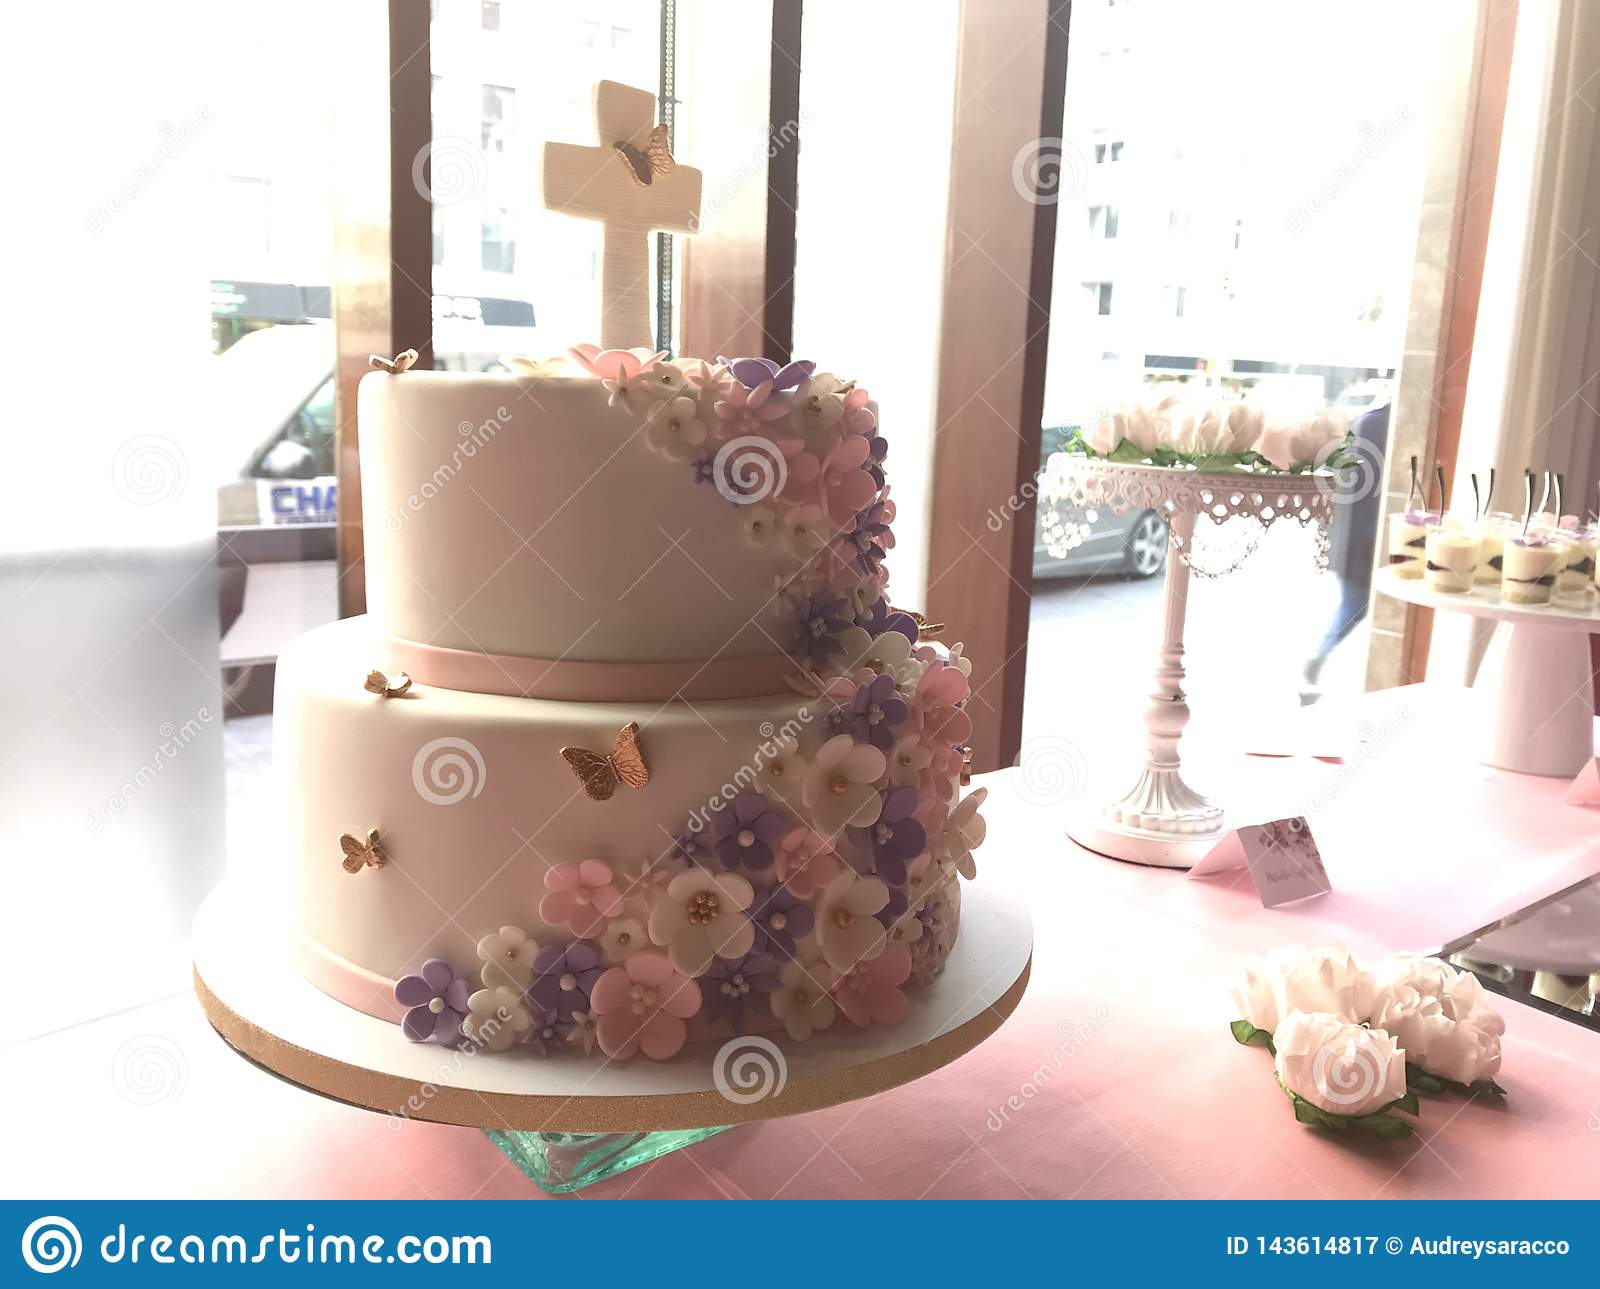 A Beautiful 2 Tier First Communion Cake Stock Image Image Of